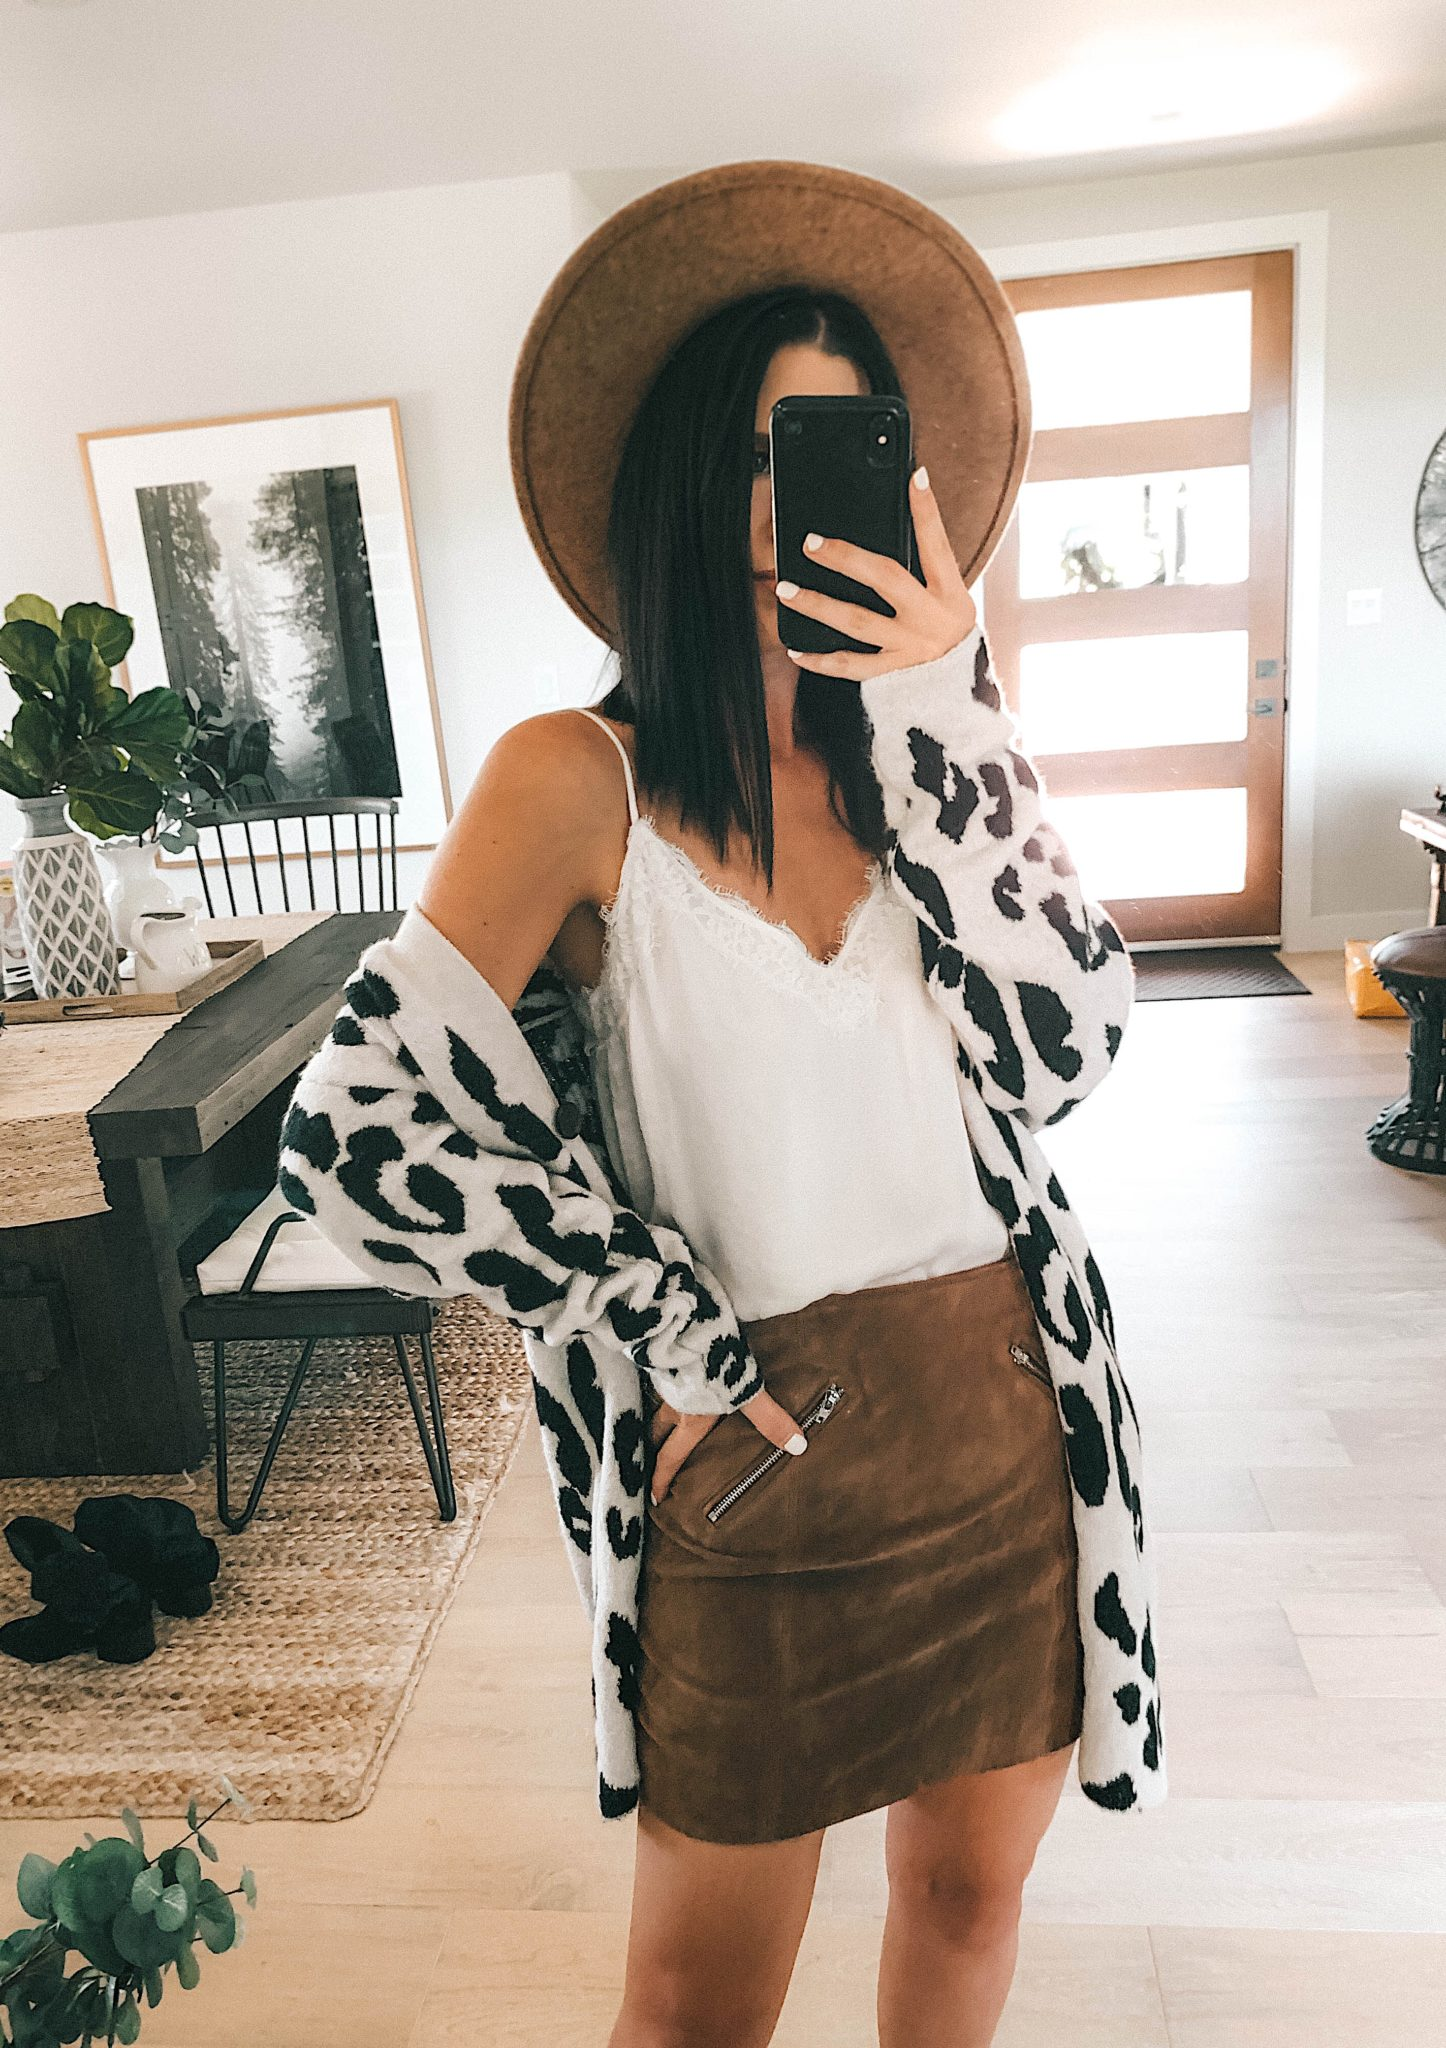 Create a Capsule Wardrobe with Nordstrom Anniversary Sale Pieces by popular Austin fashion blog, Dressed to Kill: image of a woman standing in her house and wearing a Nordstrom BlankNYC Suede Mini Skirt, Steve Madden Over the Knee Boots and BP Lace Cami